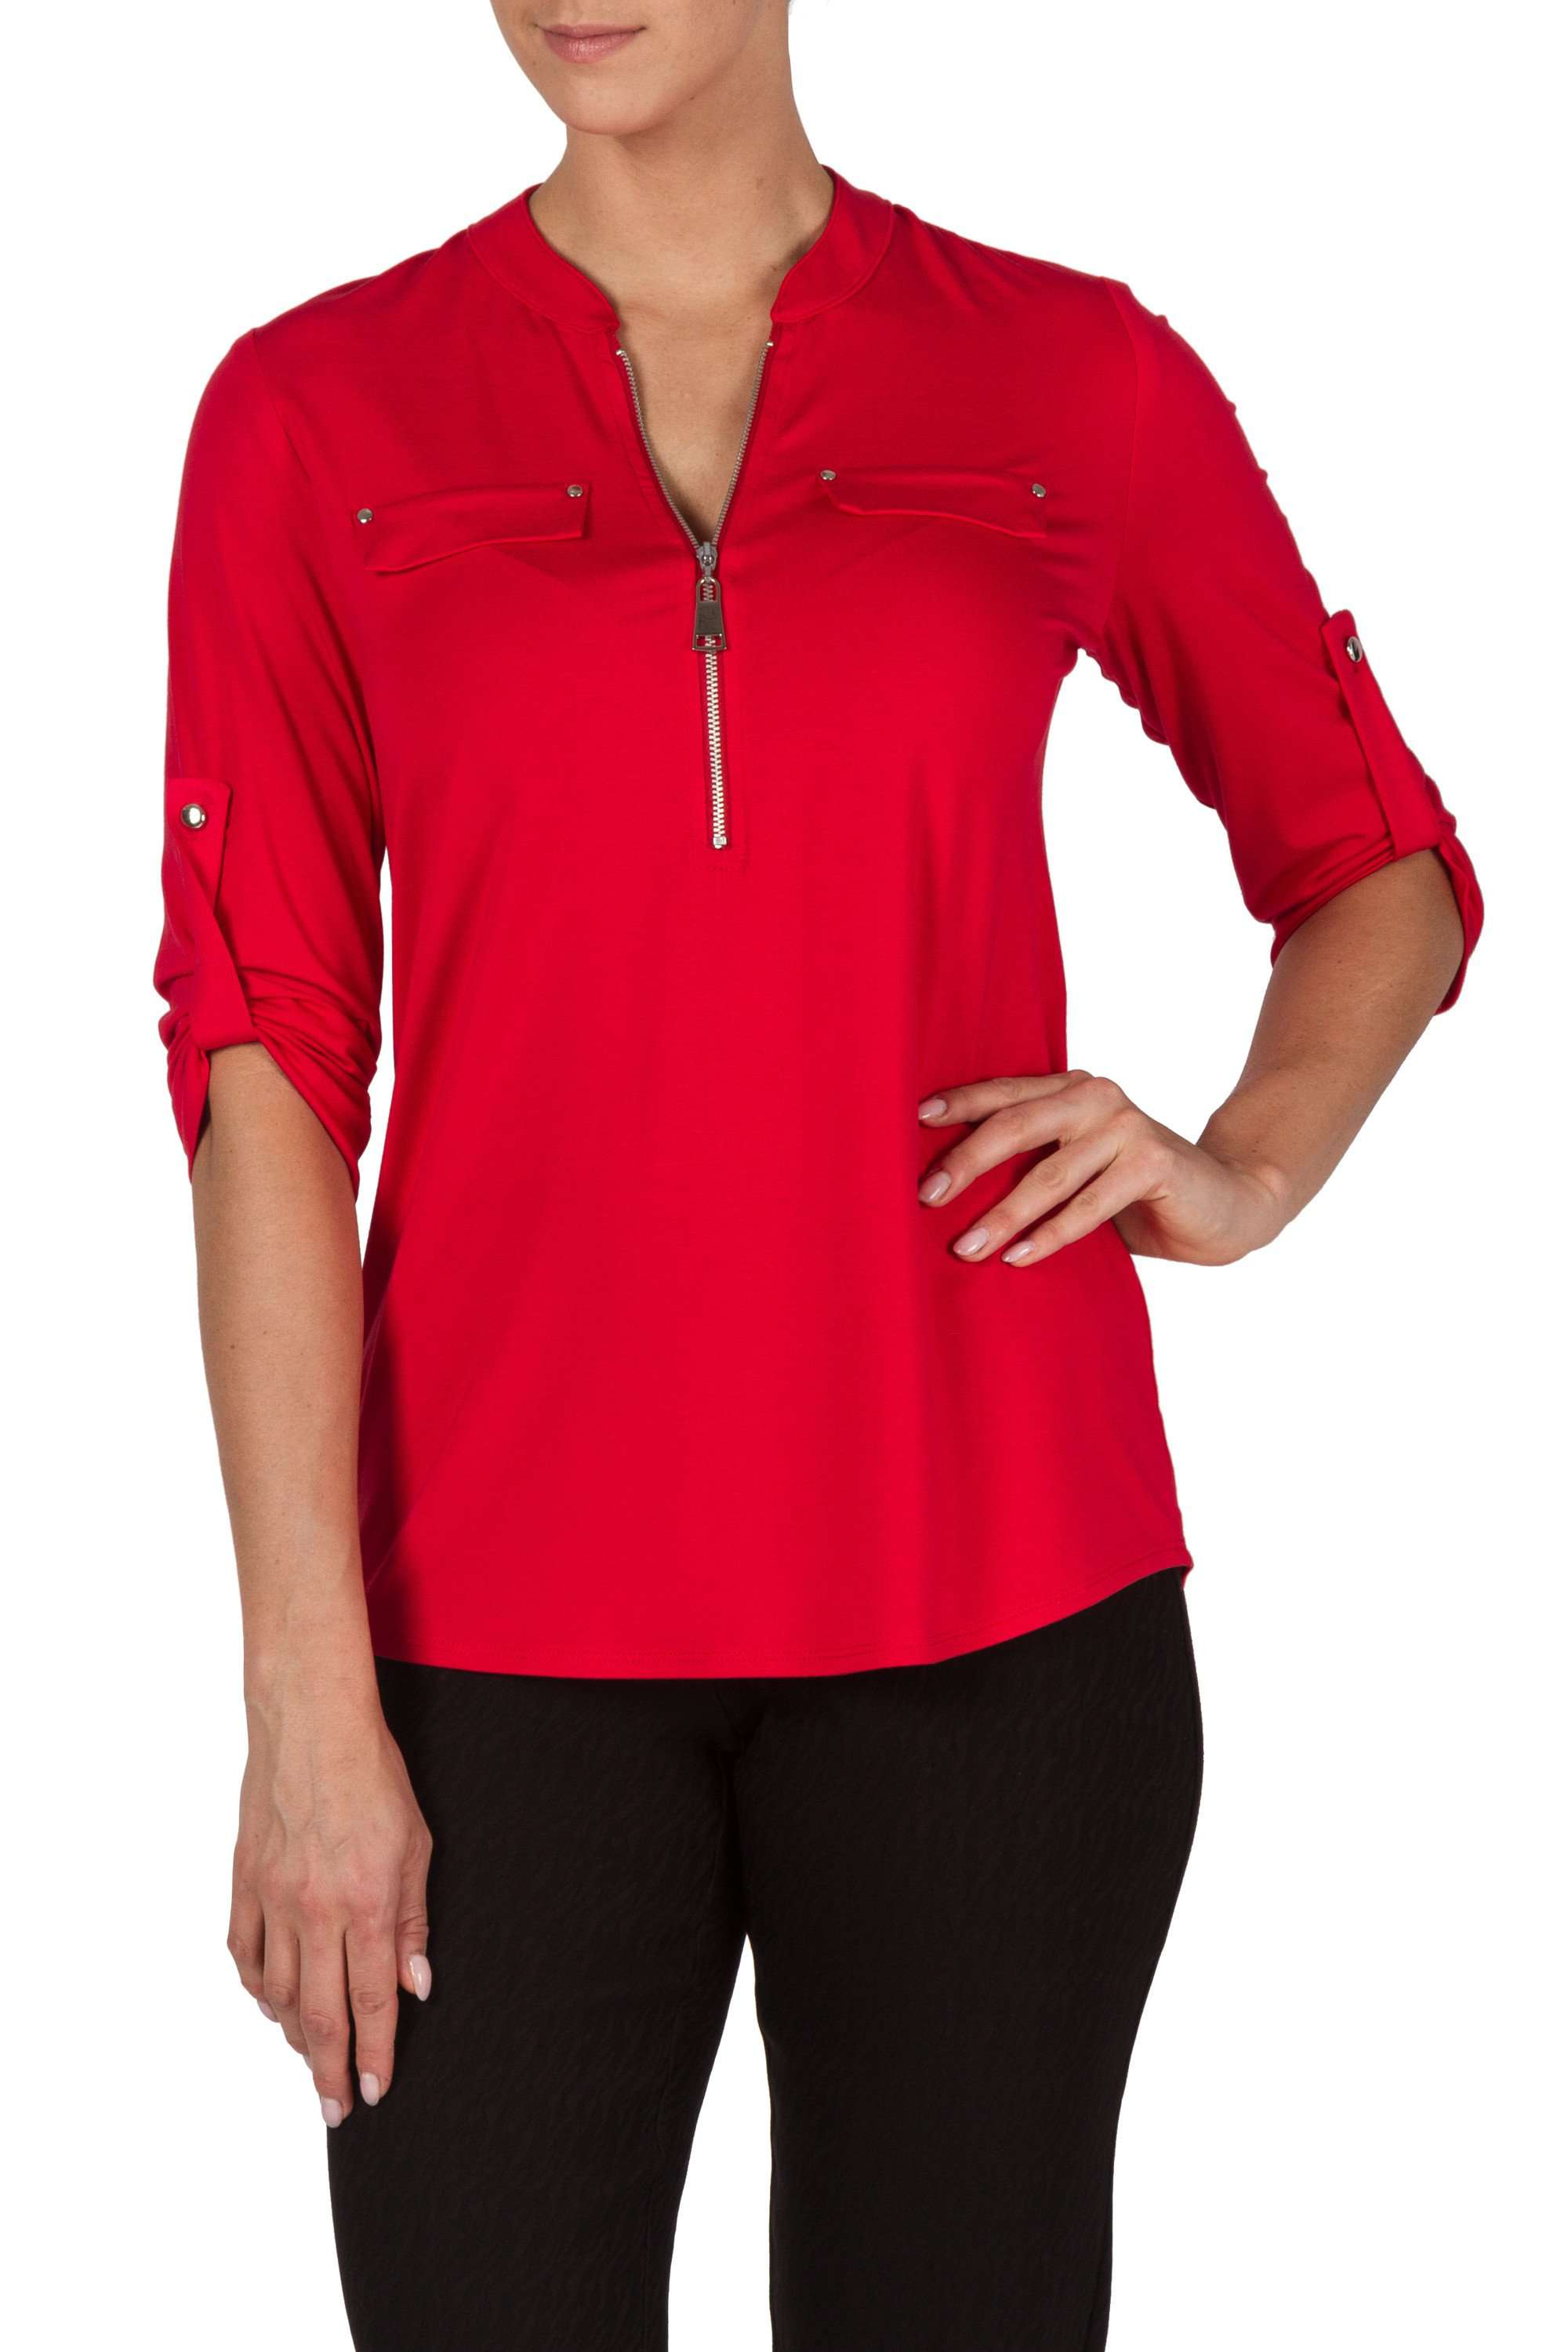 Womens Blouses Canada | Red Blouse | Designer Blouse on Sale | YM Style - Yvonne Marie